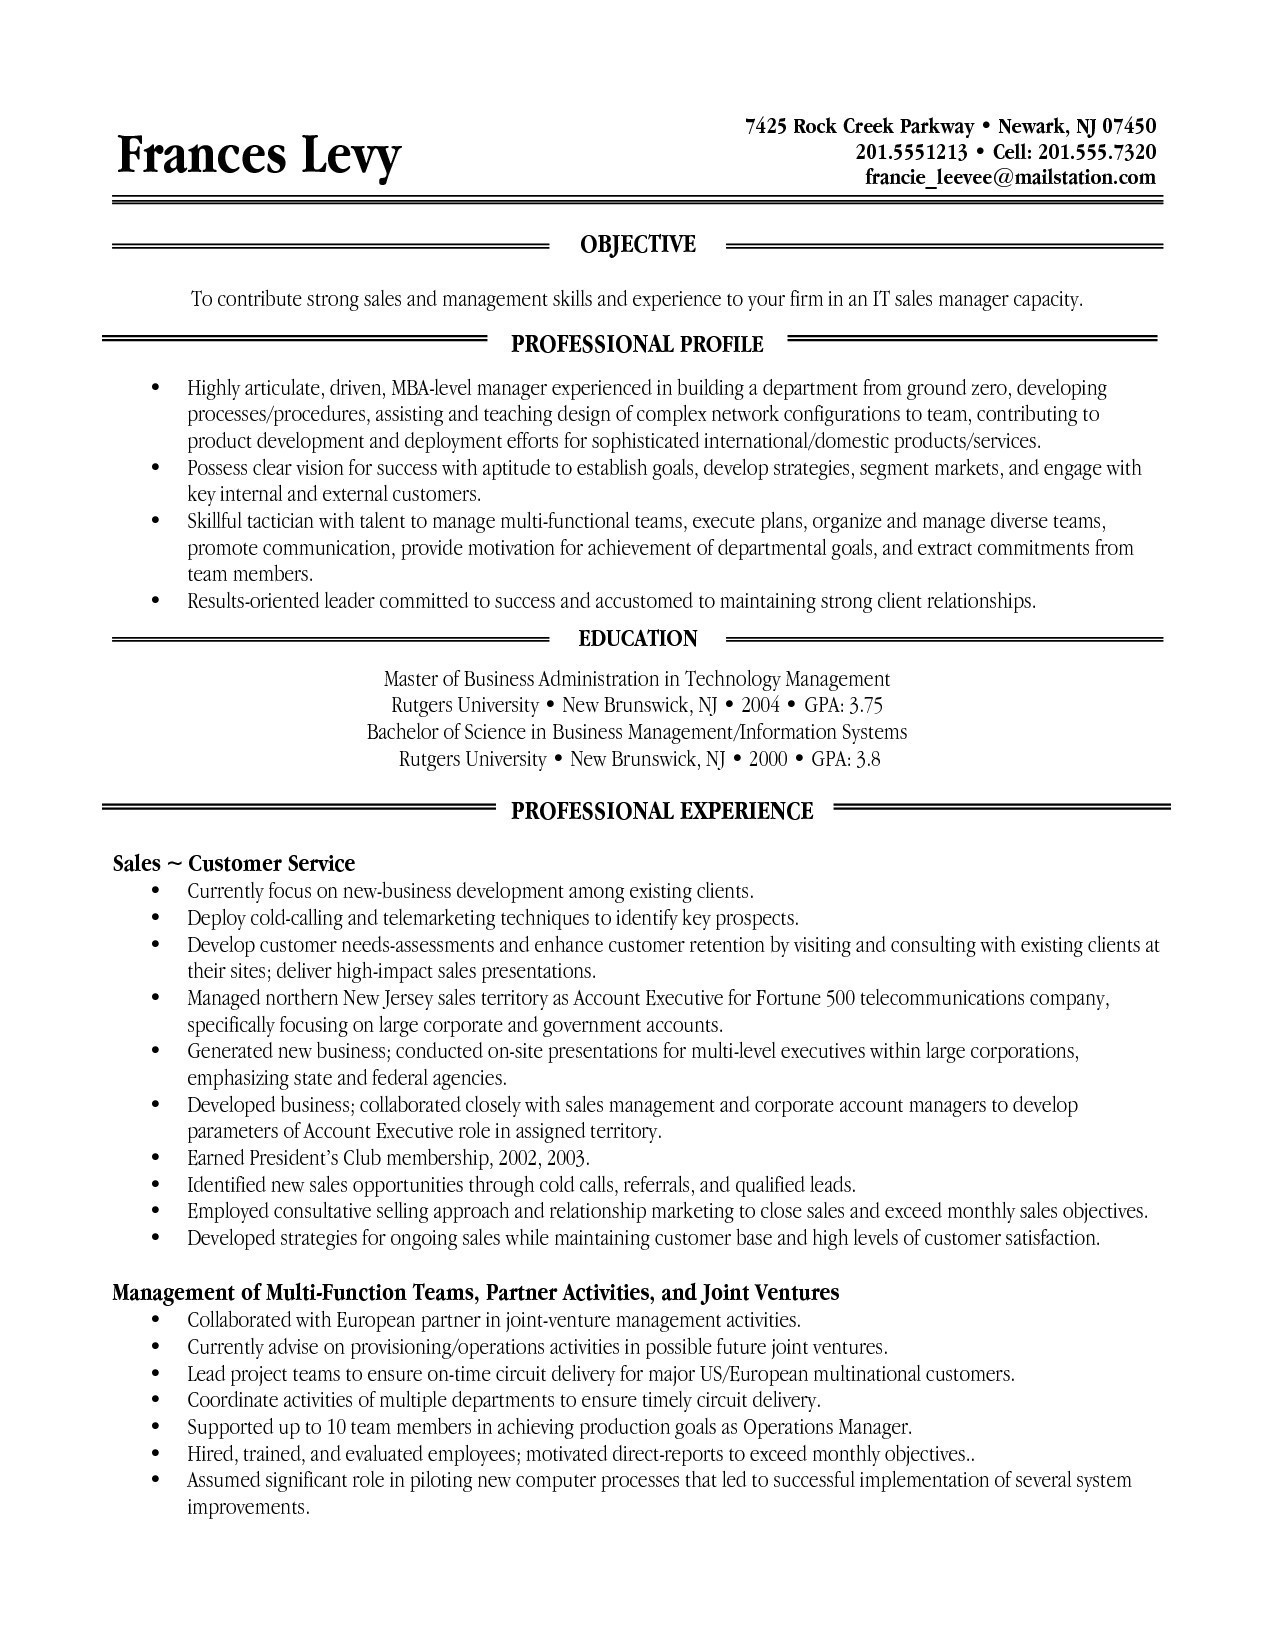 Chrono Functional Resume Template - Chrono Functional Resume Awesome Chrono Functional Cv Template